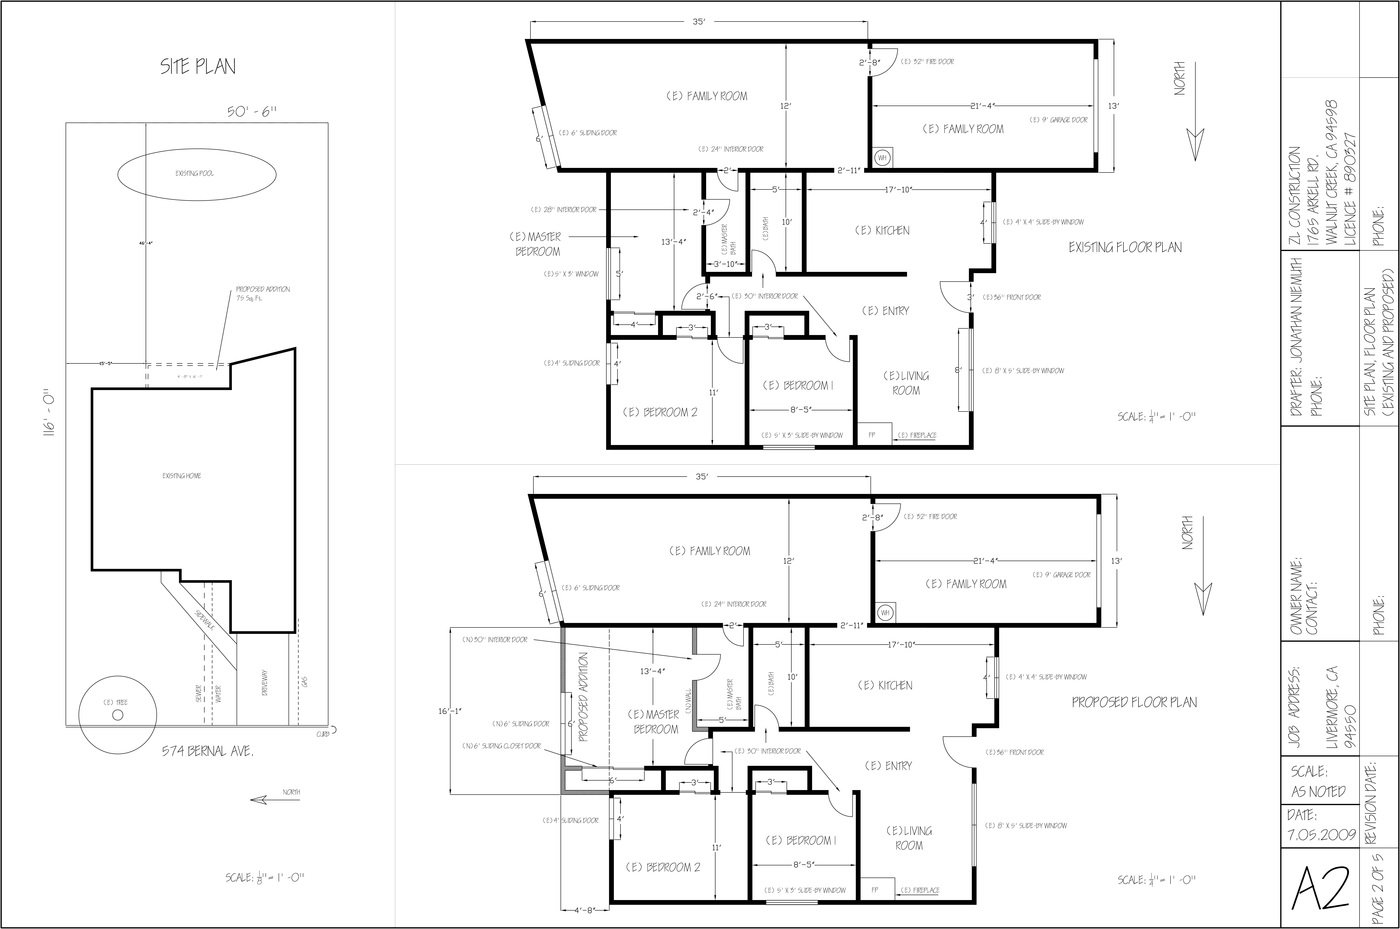 AutoCAD Drafting by Jonathan Niemuth at Coroflot com